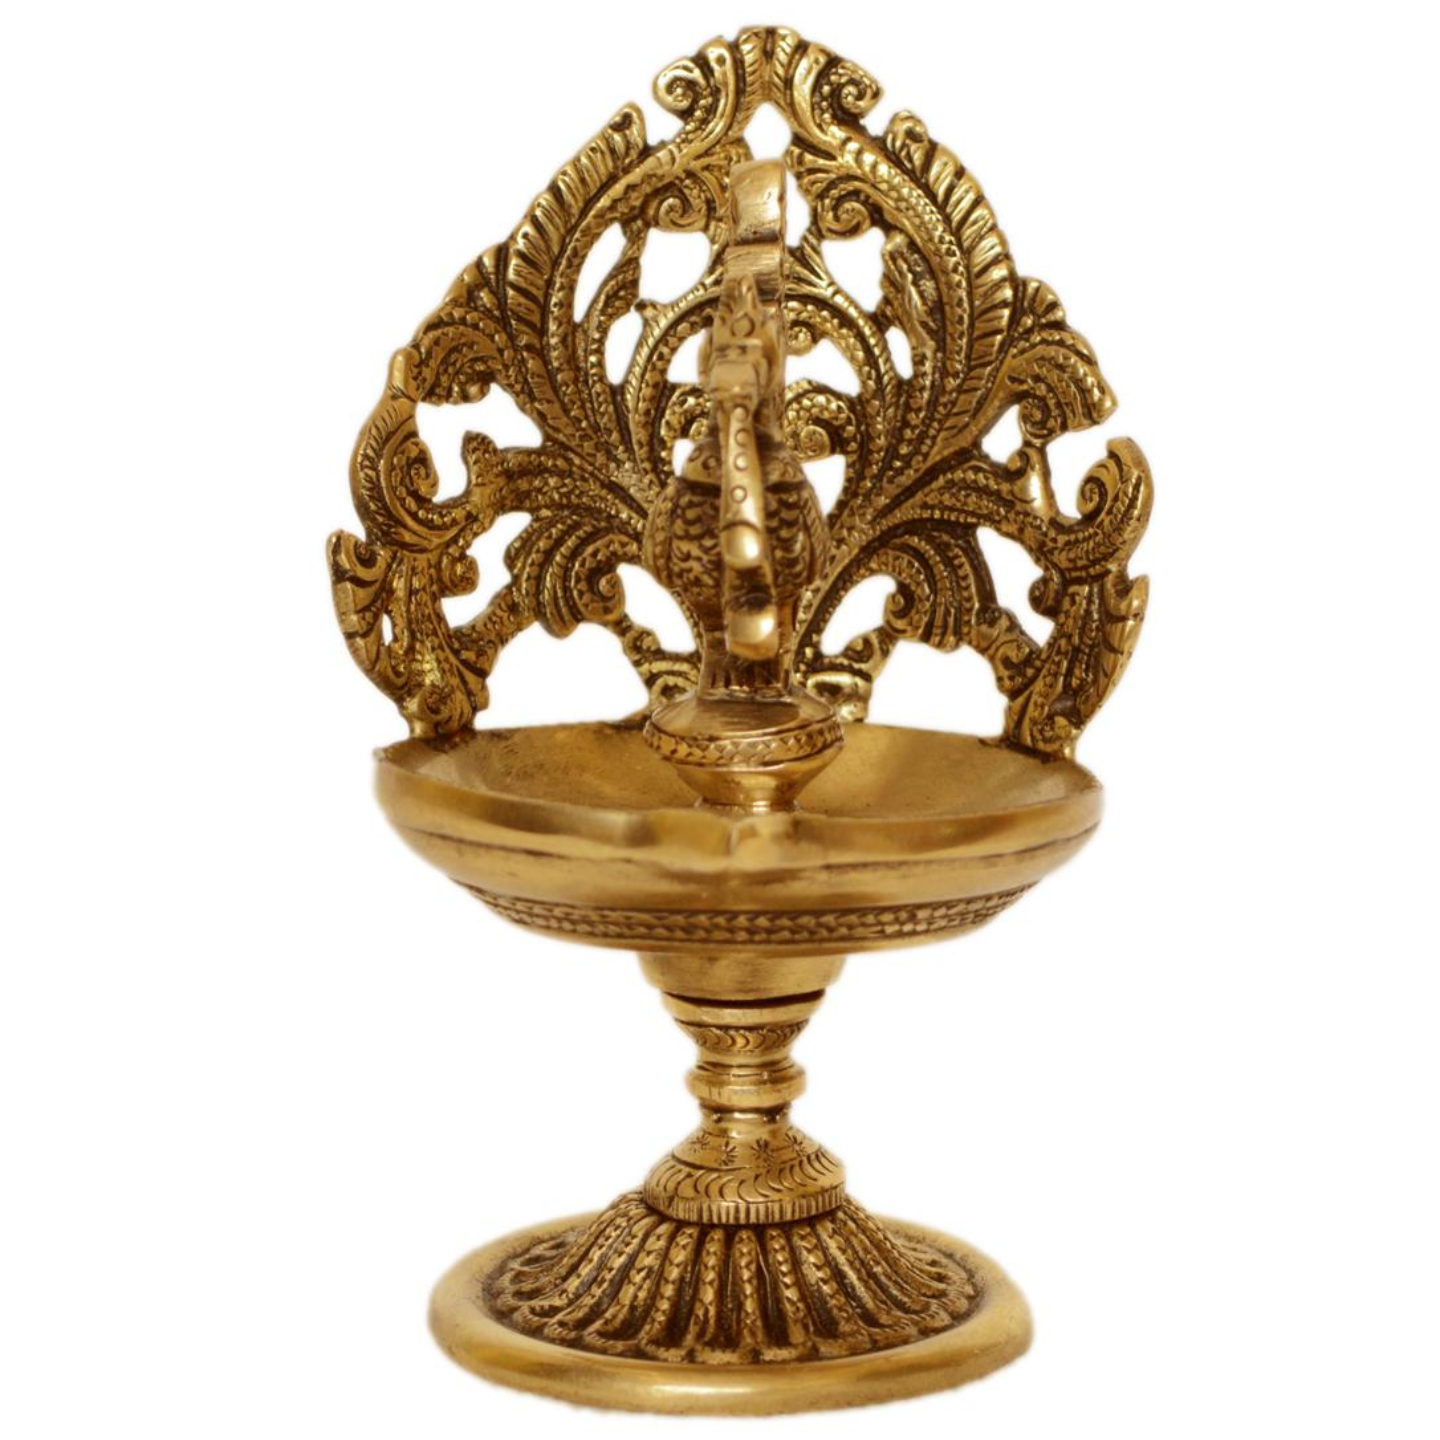 Brass Made Table Diya with Peacock Figure - 6 Inch BS1196 A